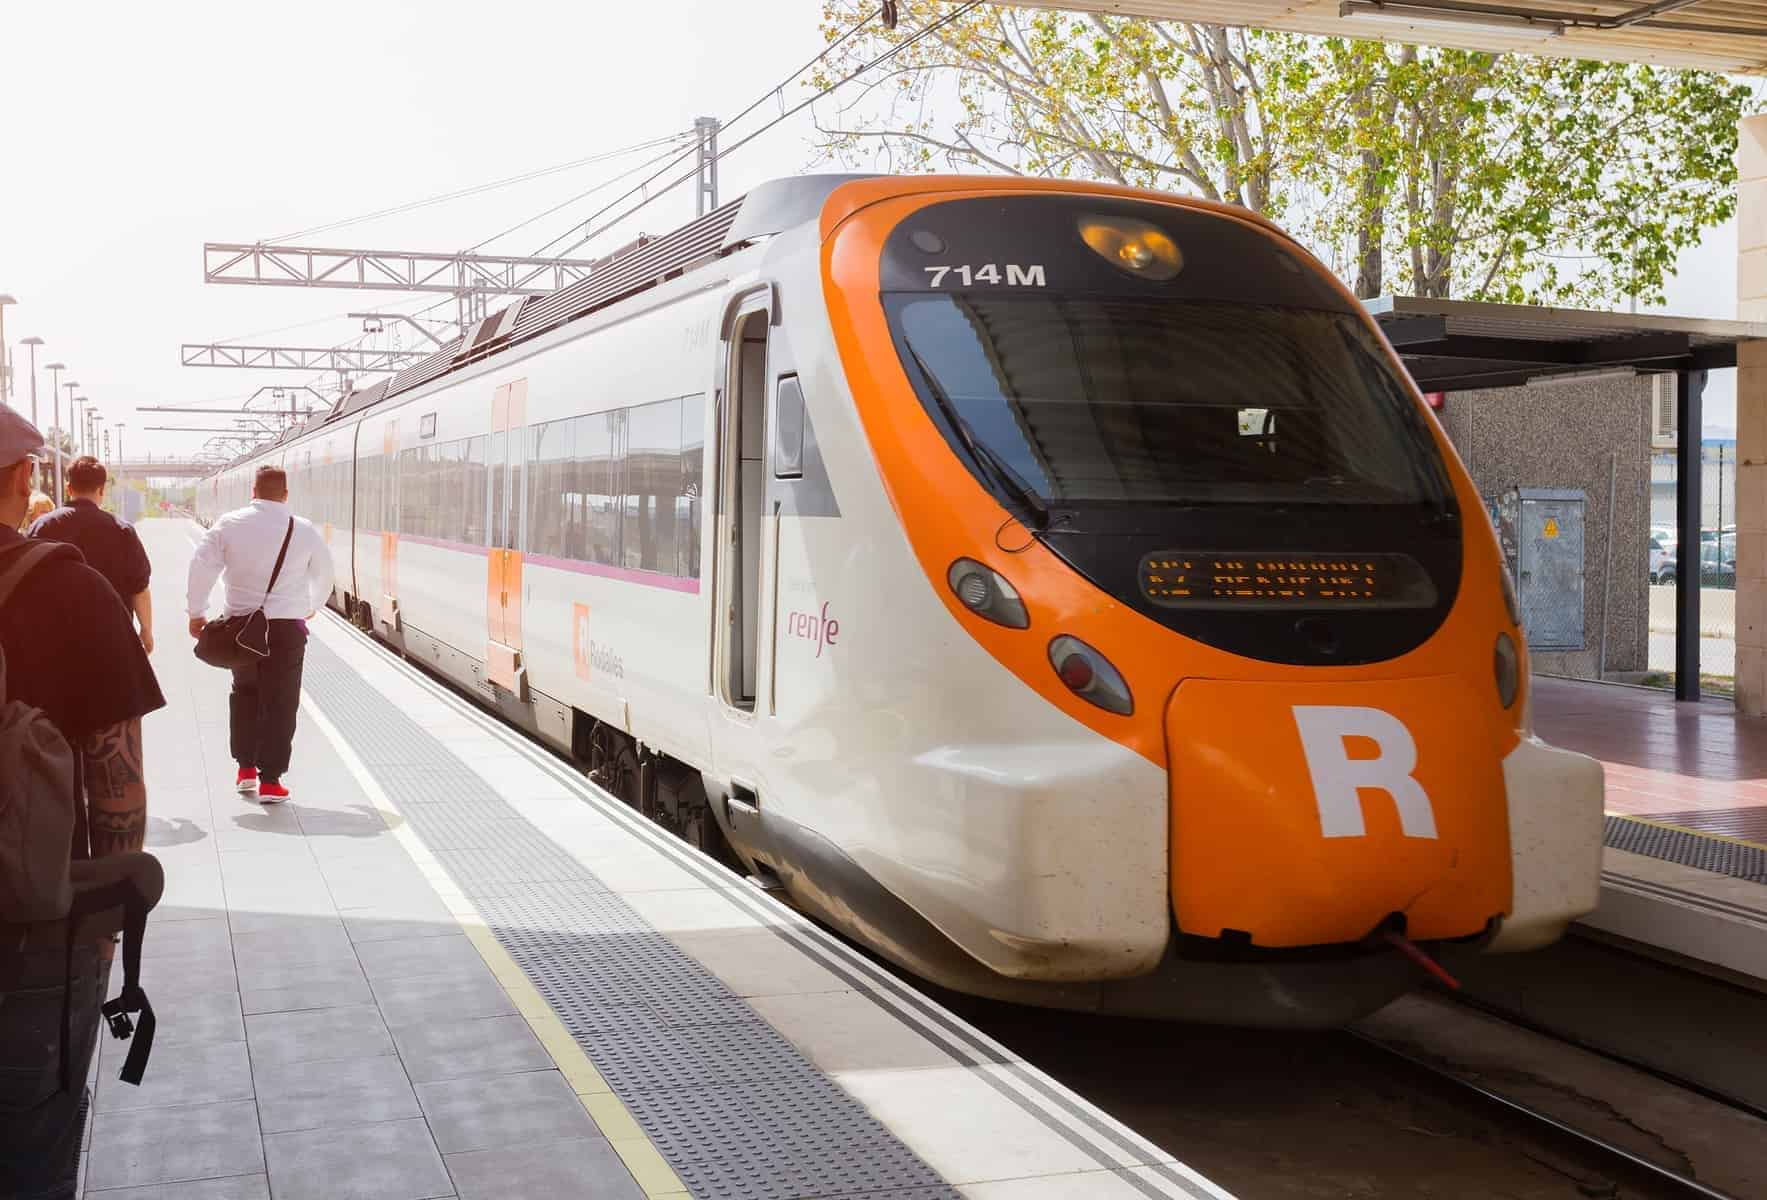 BARCELONA, SPAIN - Passengers Board the Renfe train at El Prat airport at the station